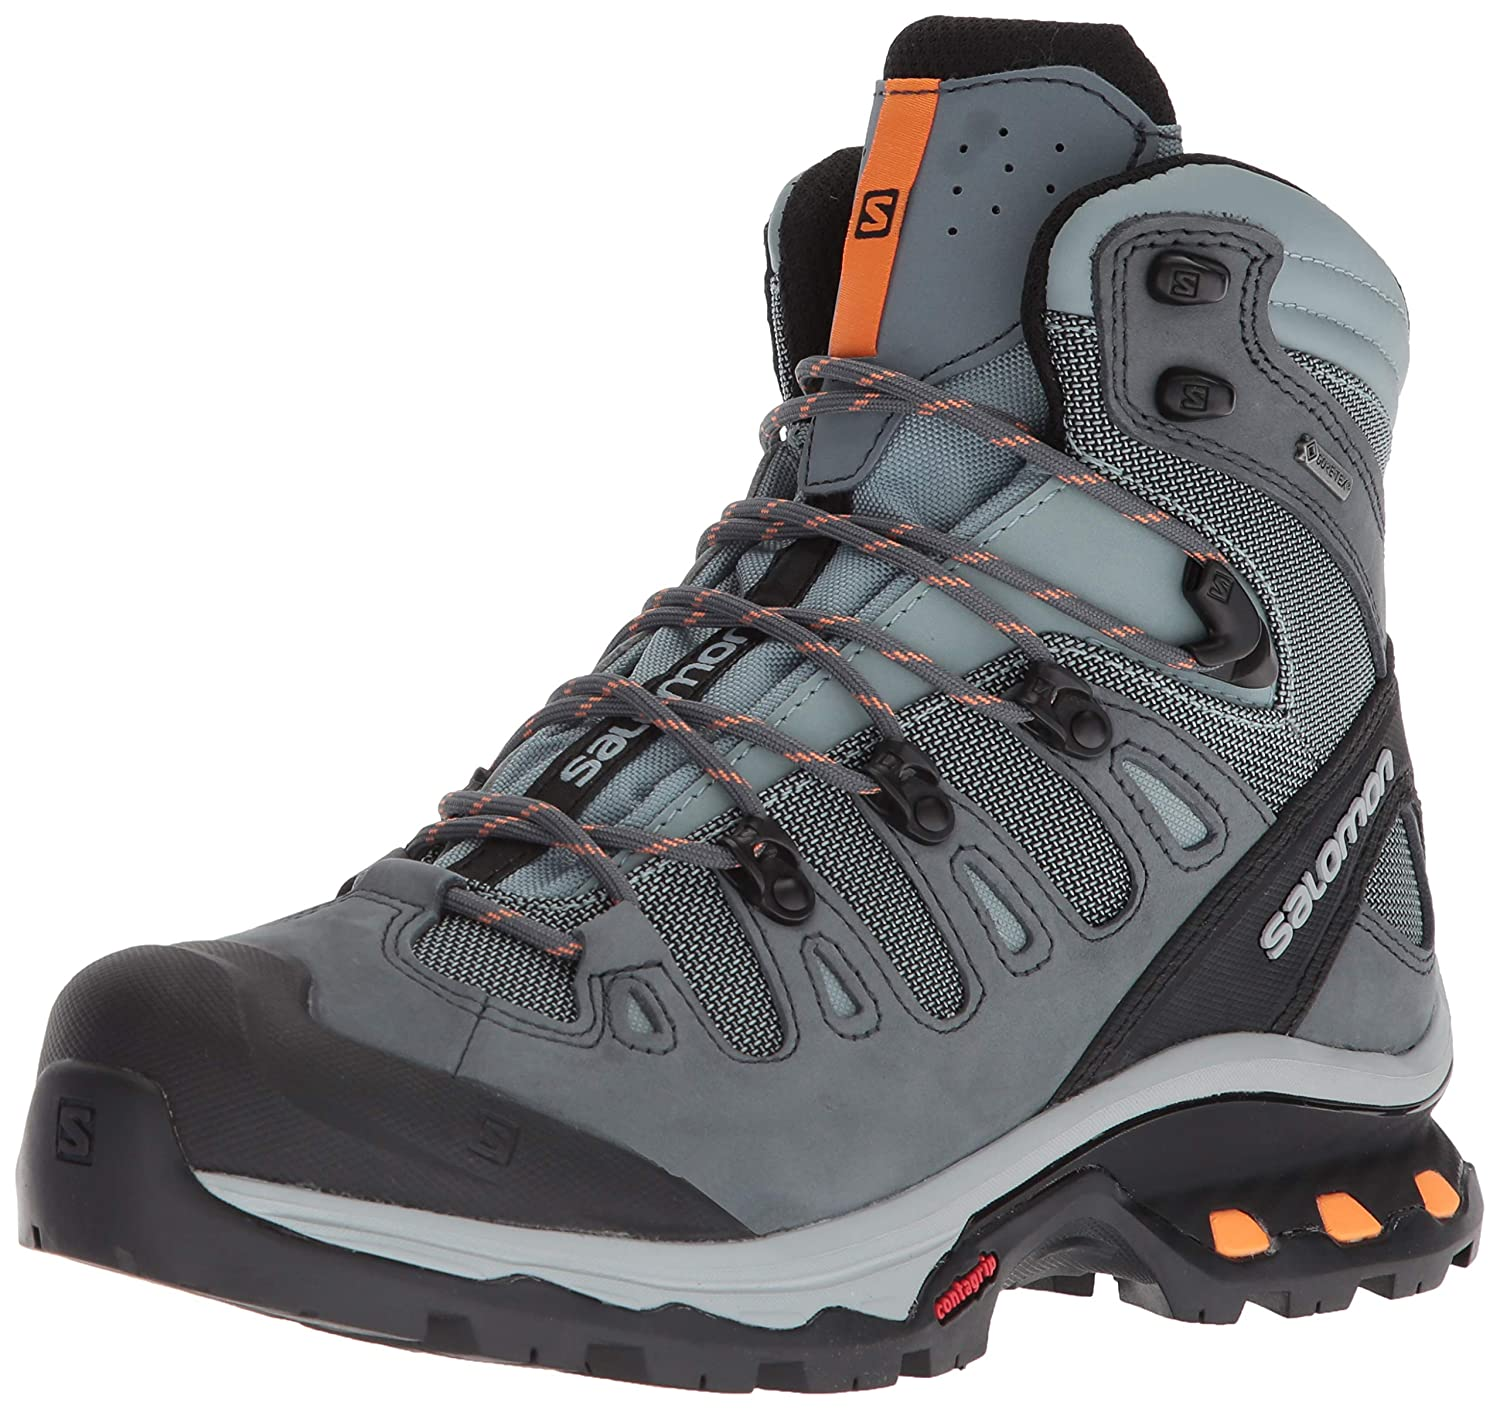 Lead stormy weather SALOMON Womens Quest 4D 3 GTX W Trail Running shoes